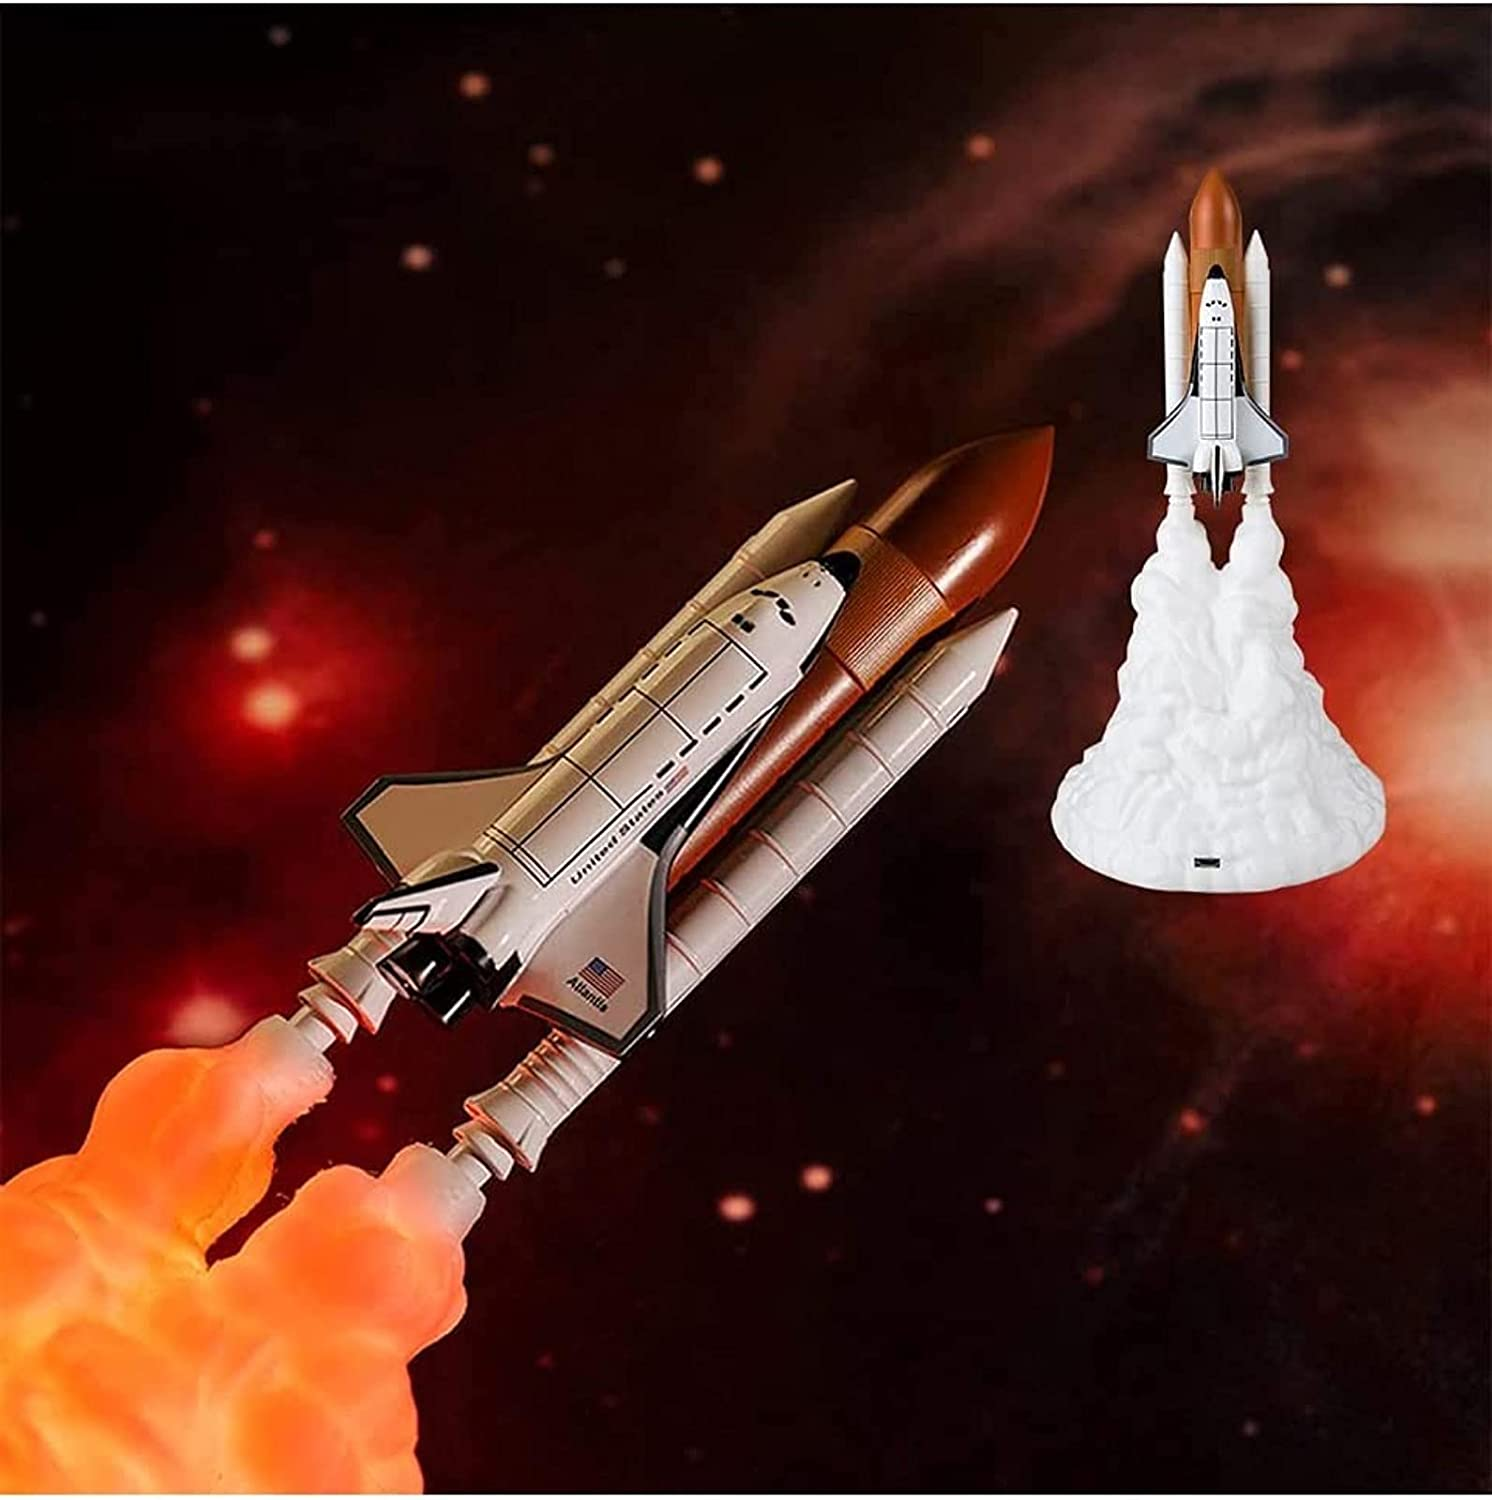 Purchase HAIFENGDA OFFicial shop 3D Print Rocket Night Light Space 11in Mo LED Shuttle